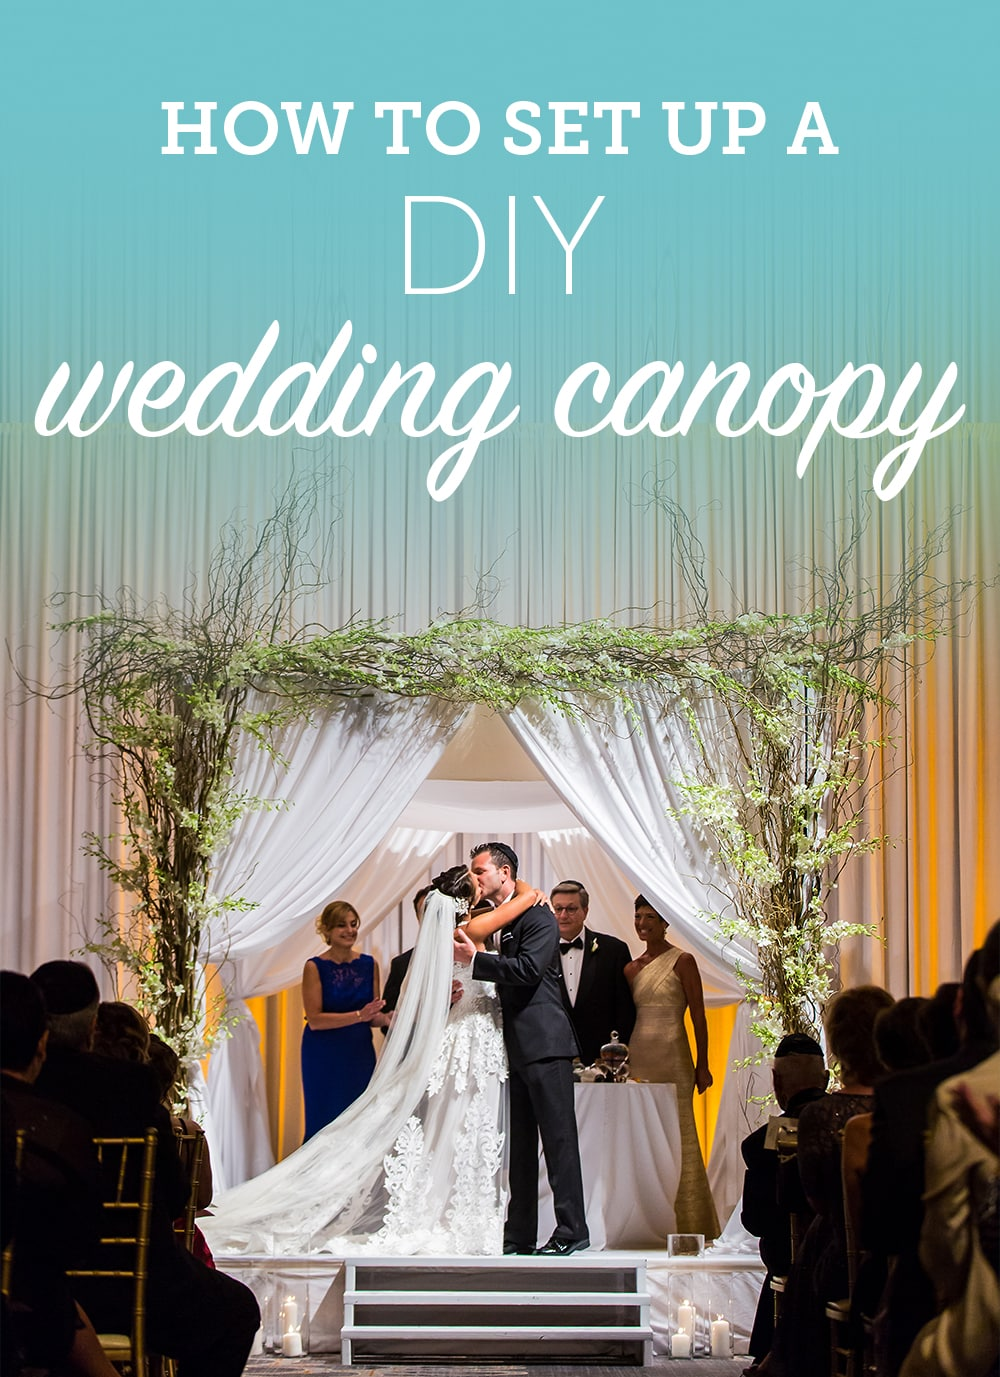 rent-my-wedding-diy-wedding-canopy2 | The Budget Savvy Bride